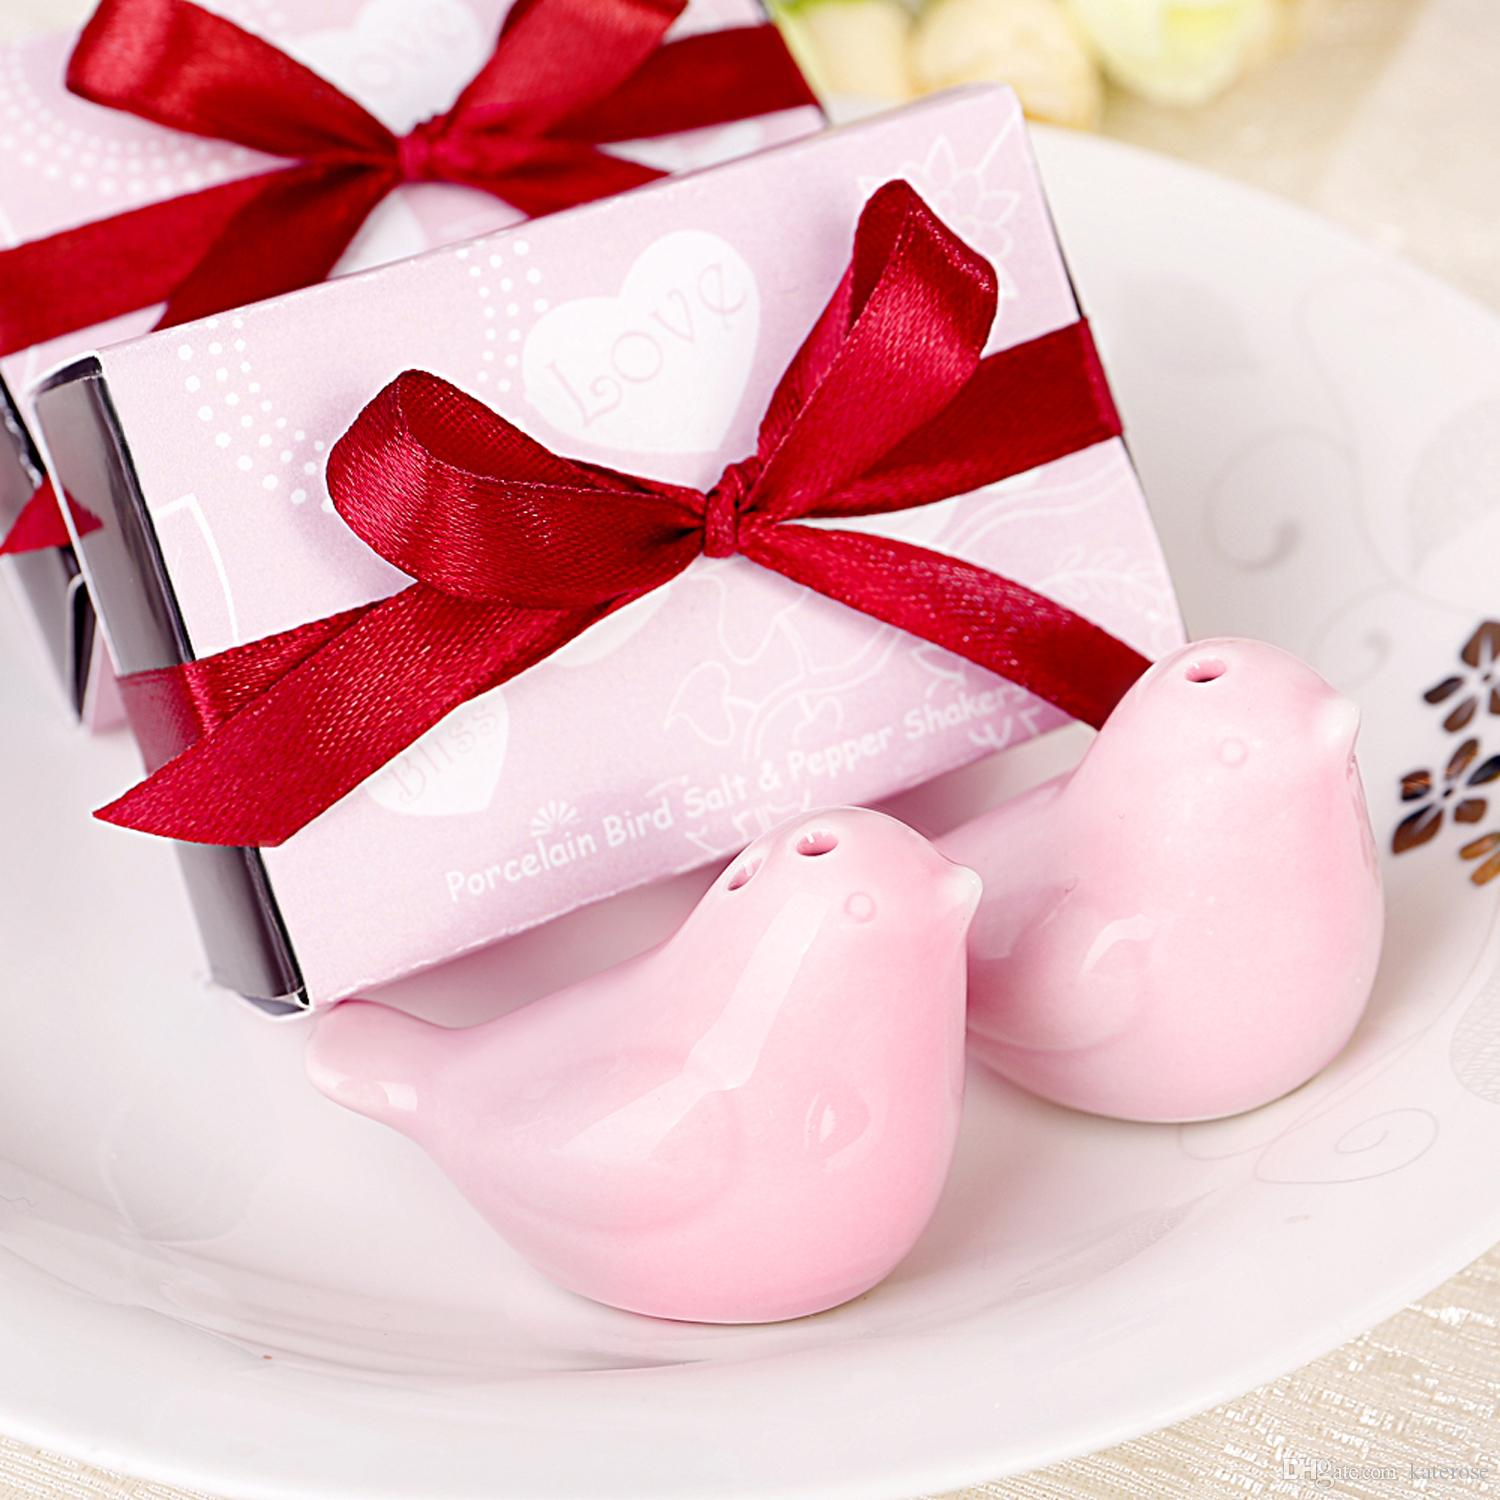 Pink Color Love Birds Ceramic Salt&Pepper Shakers Wedding Favors ...